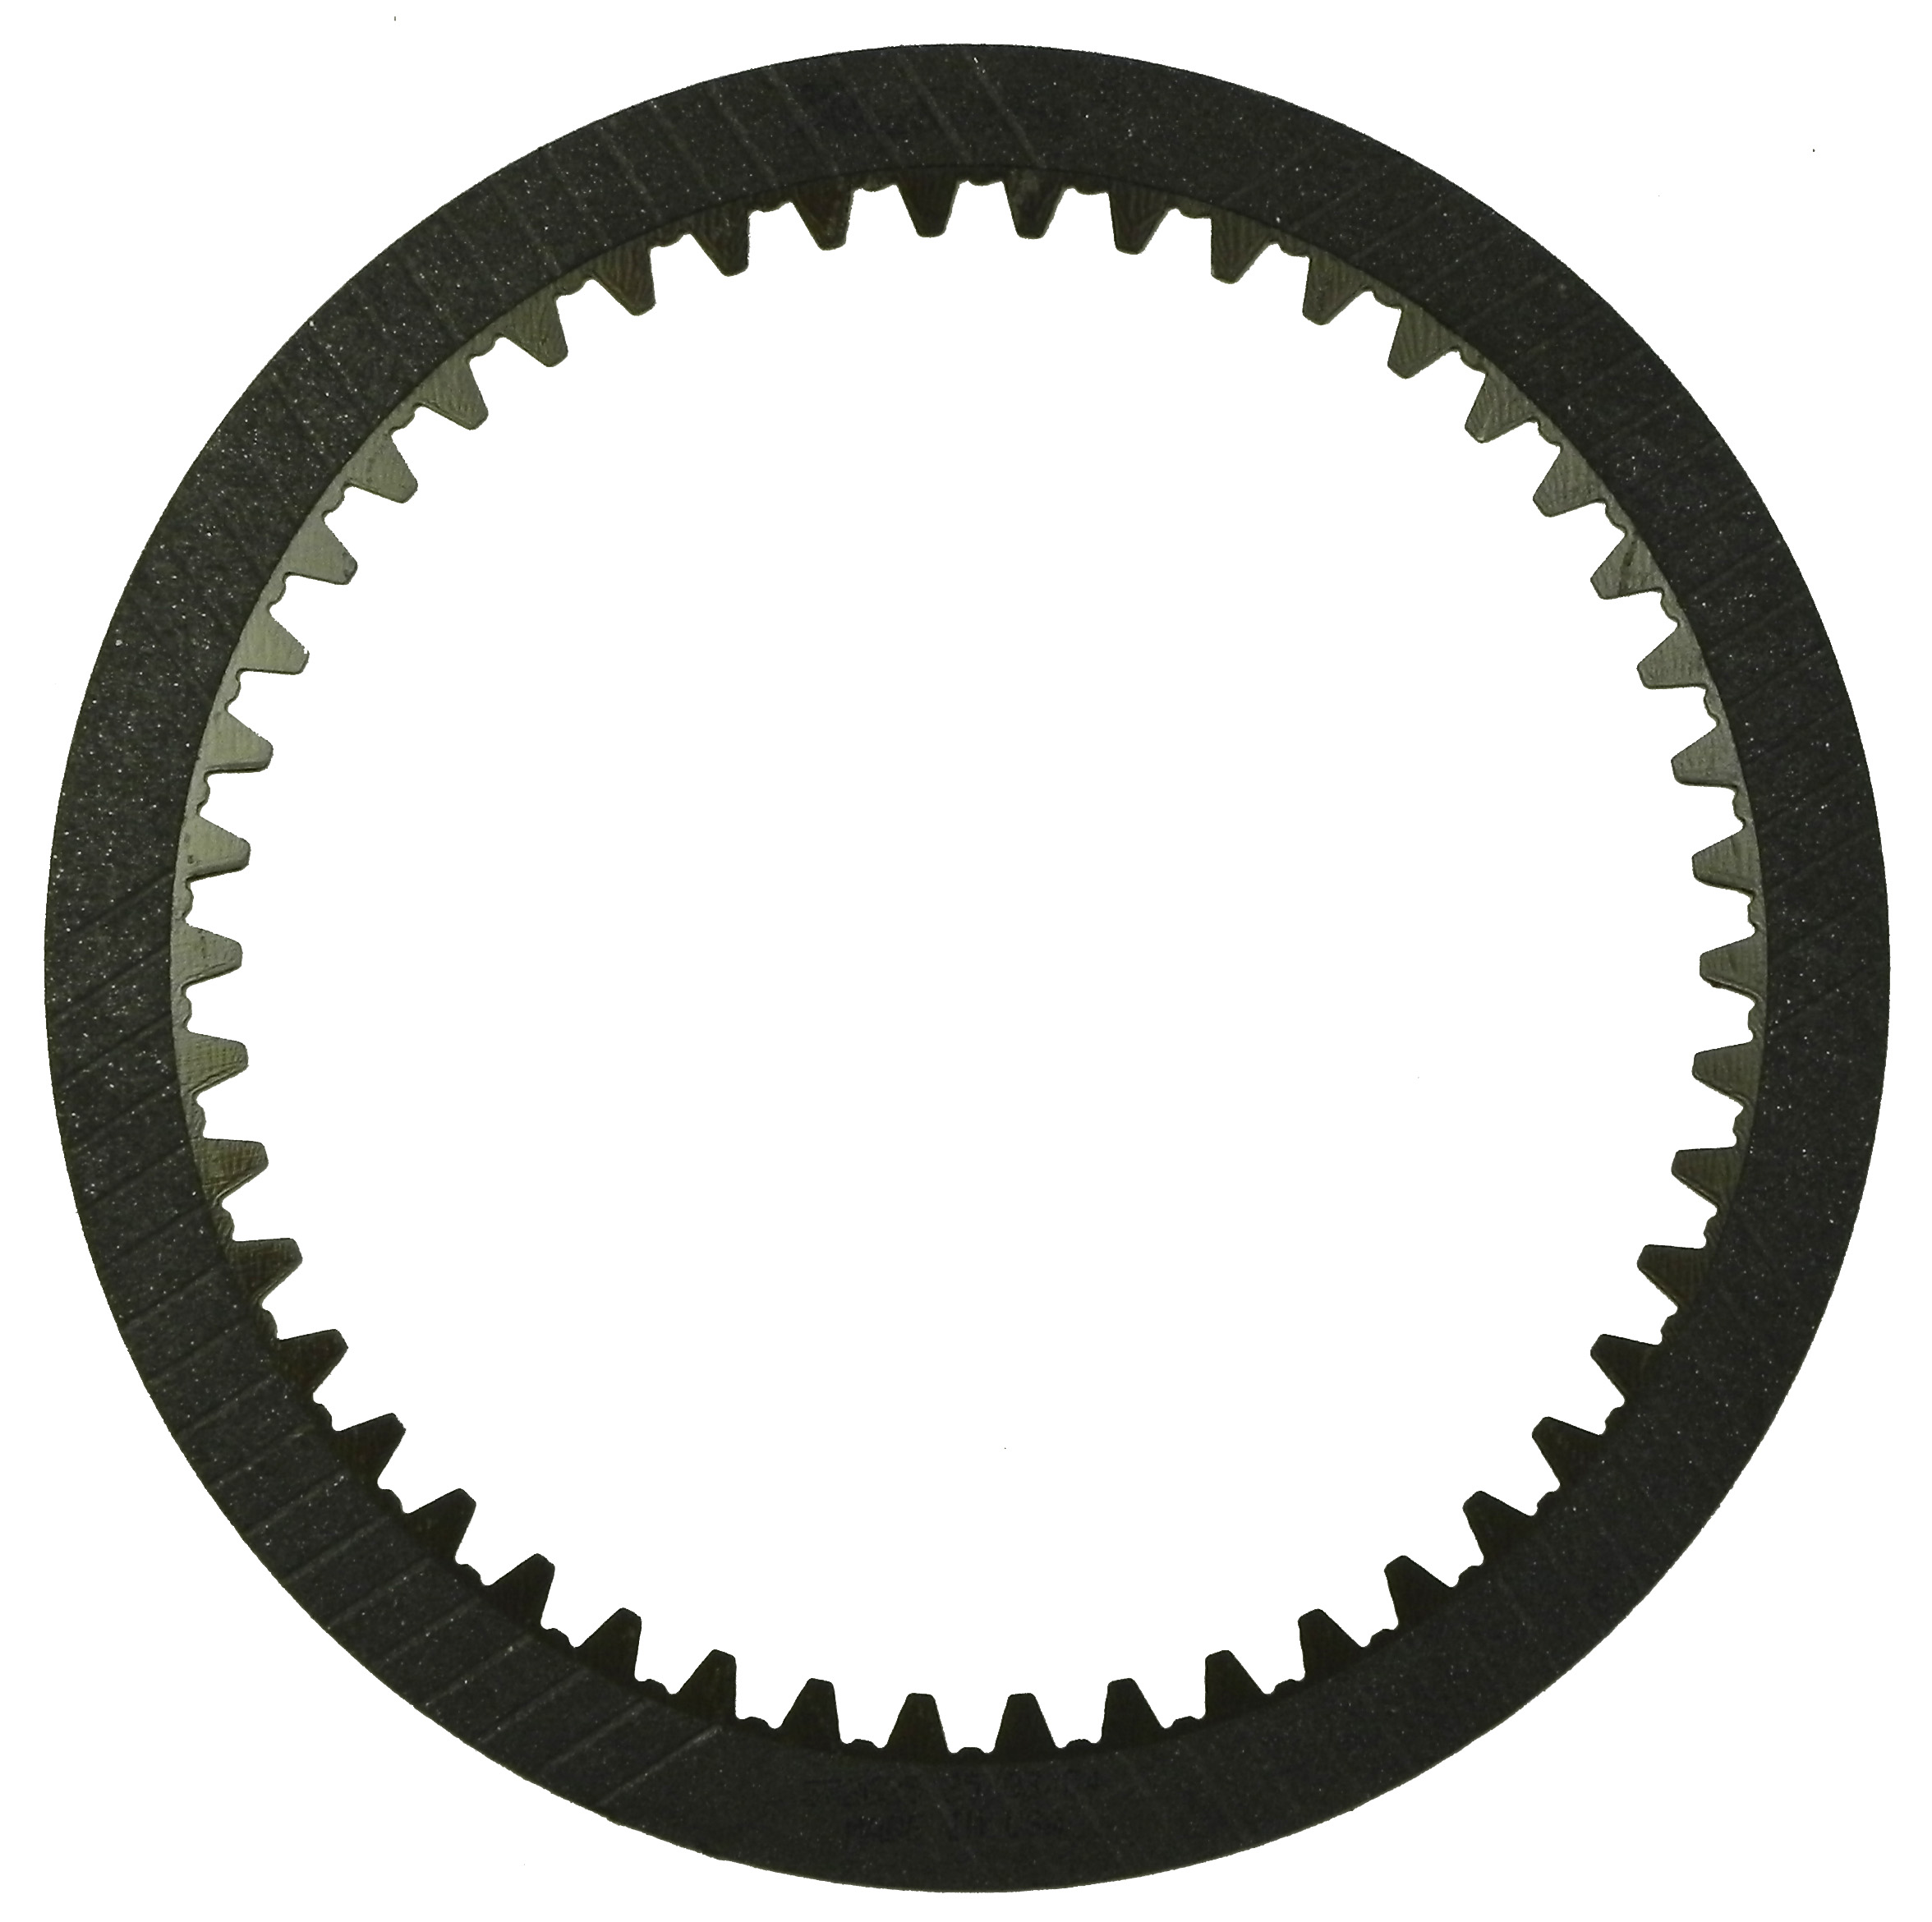 R572625 | 1996-ON Friction Clutch Plate High Energy B3 Clutch High Energy